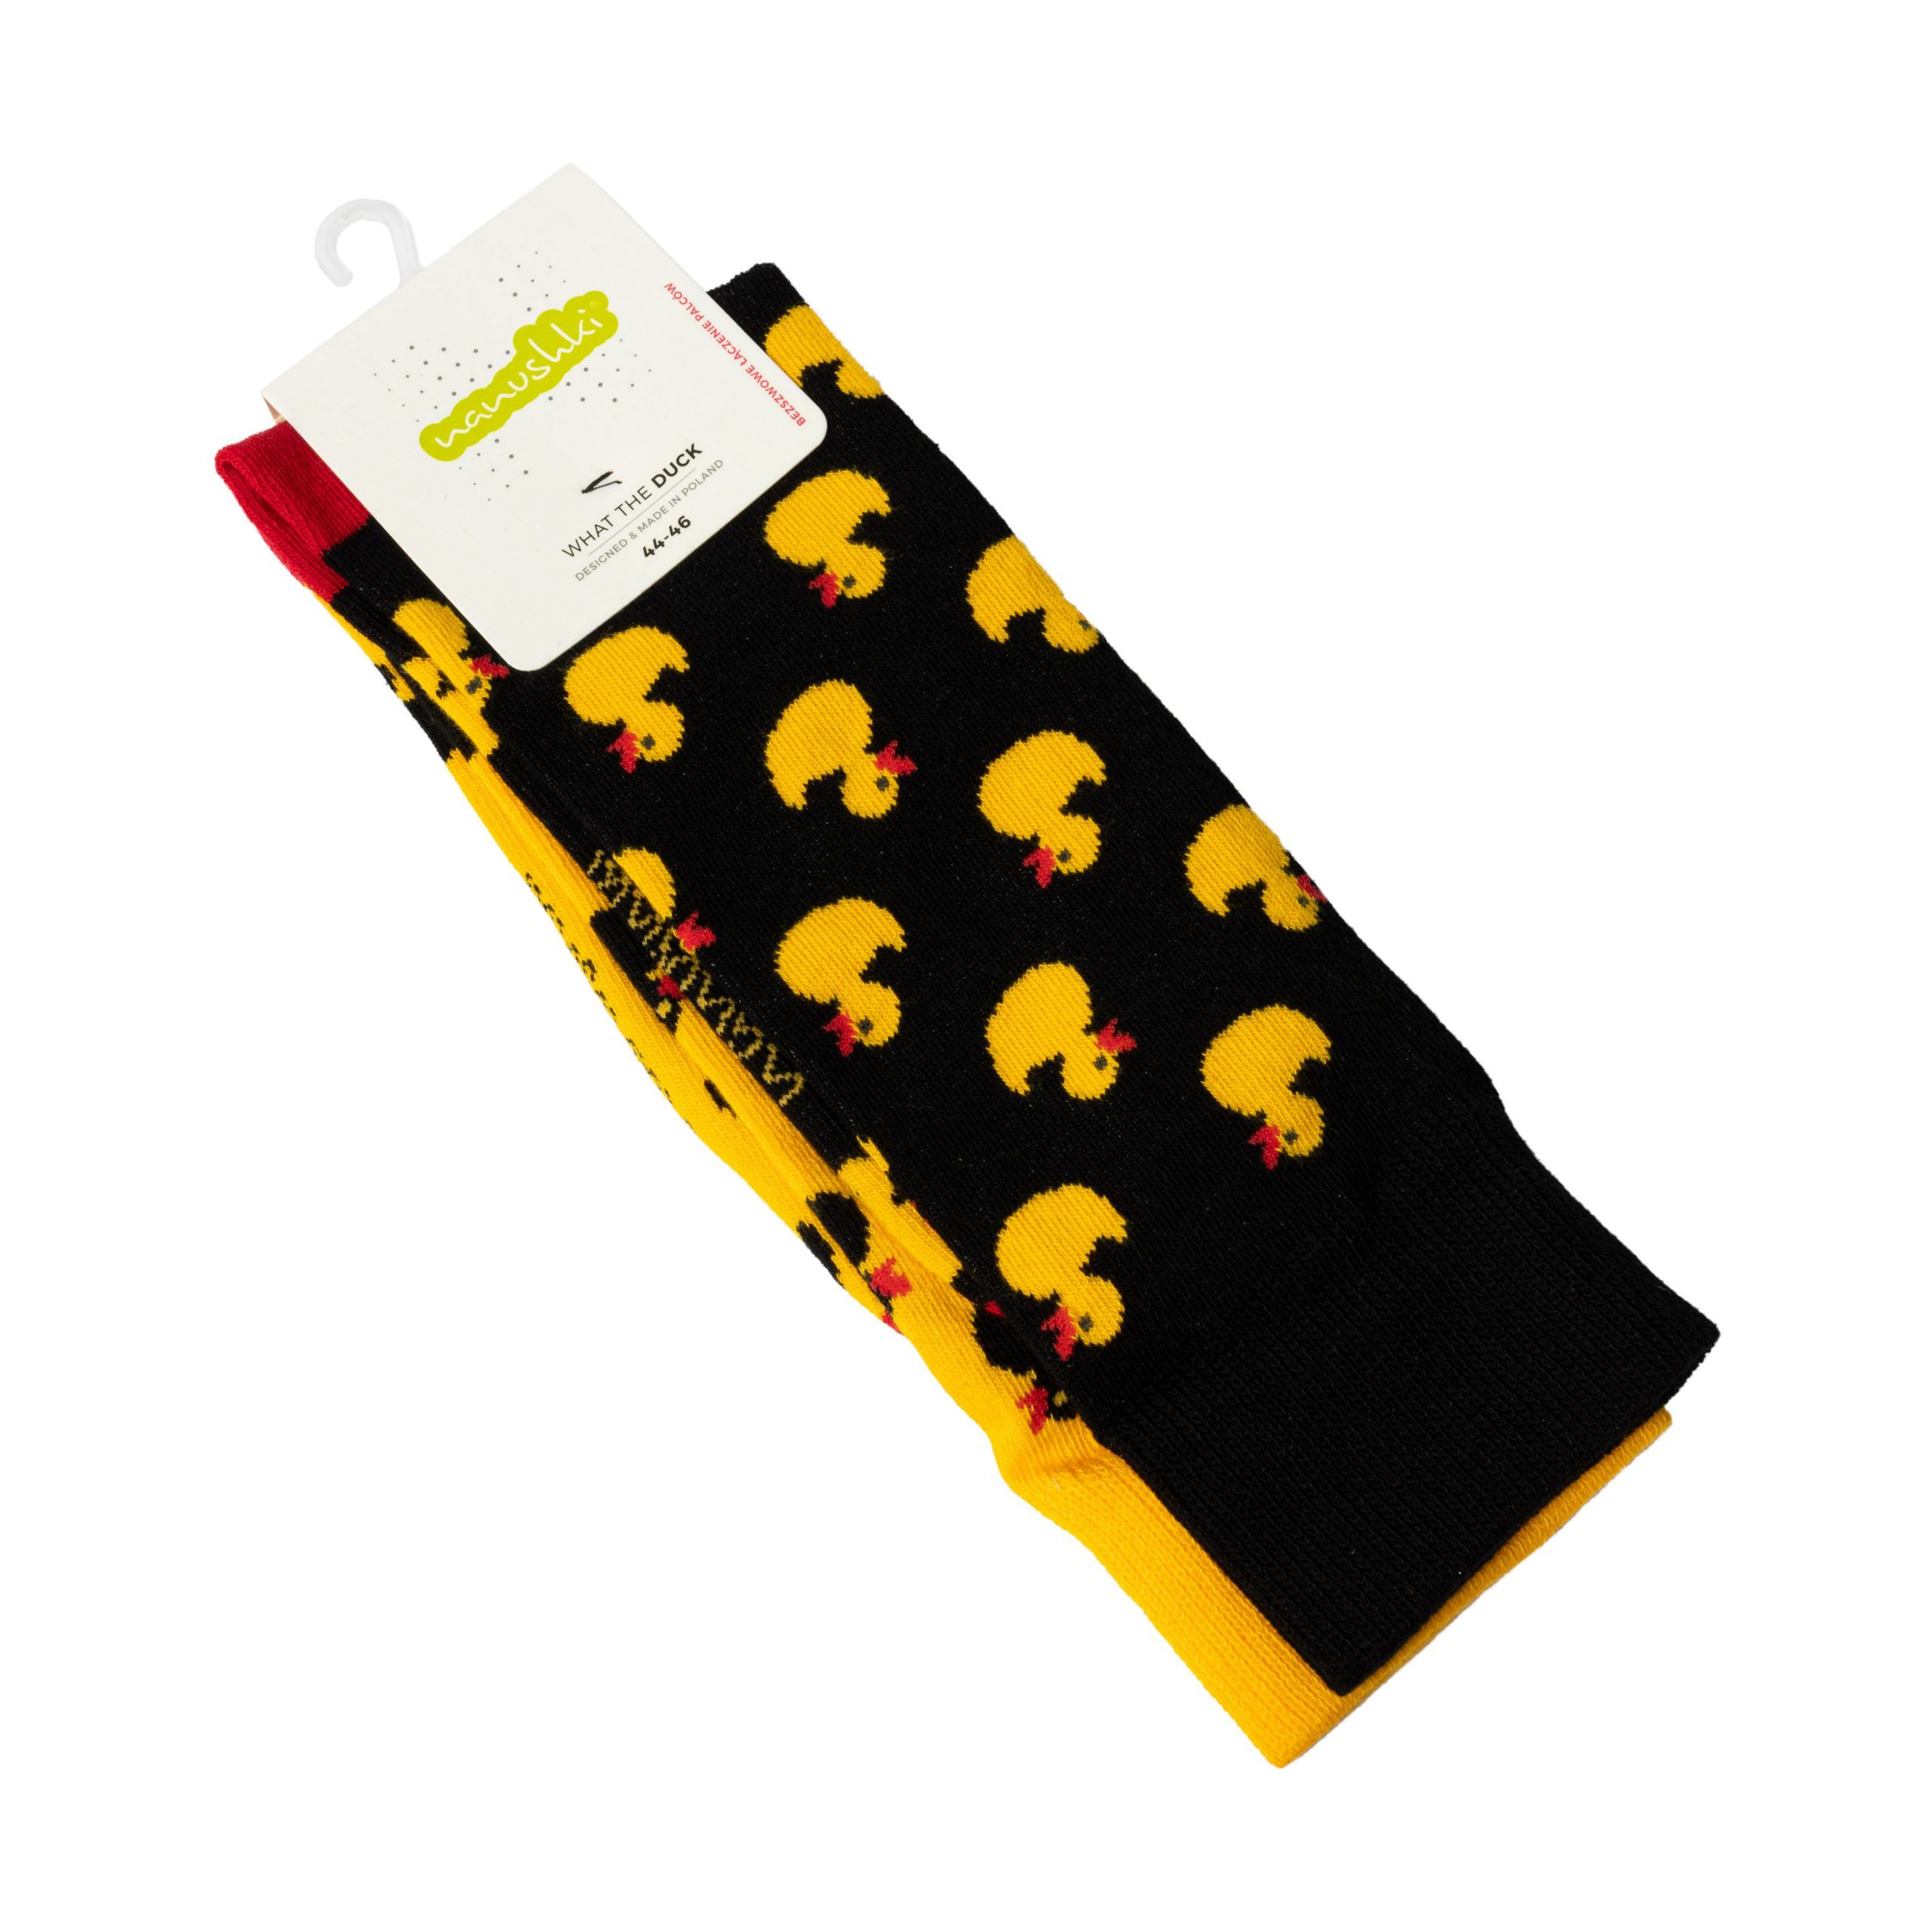 Duck You Yellow and black socks folded